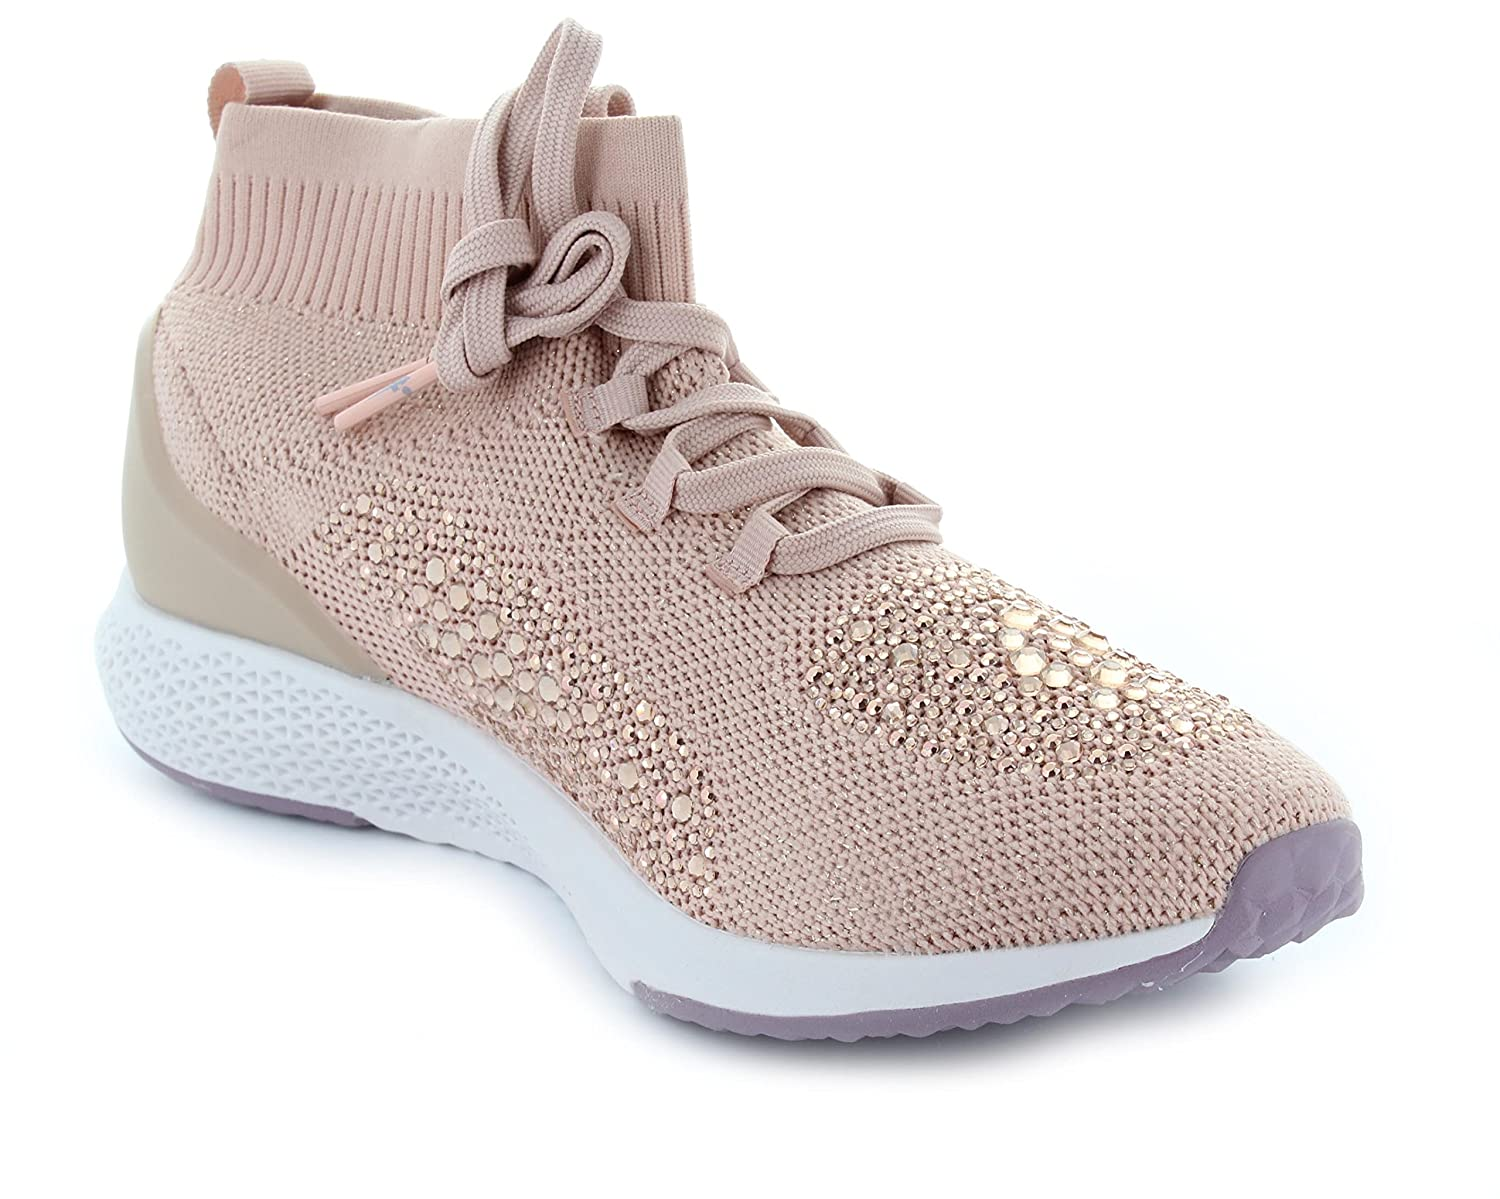 Tamaris Damen Sneaker 25204 High-Top High-Top 25204 Touch-IT Strass Wechsel-Fussbett Lt.pink 587192